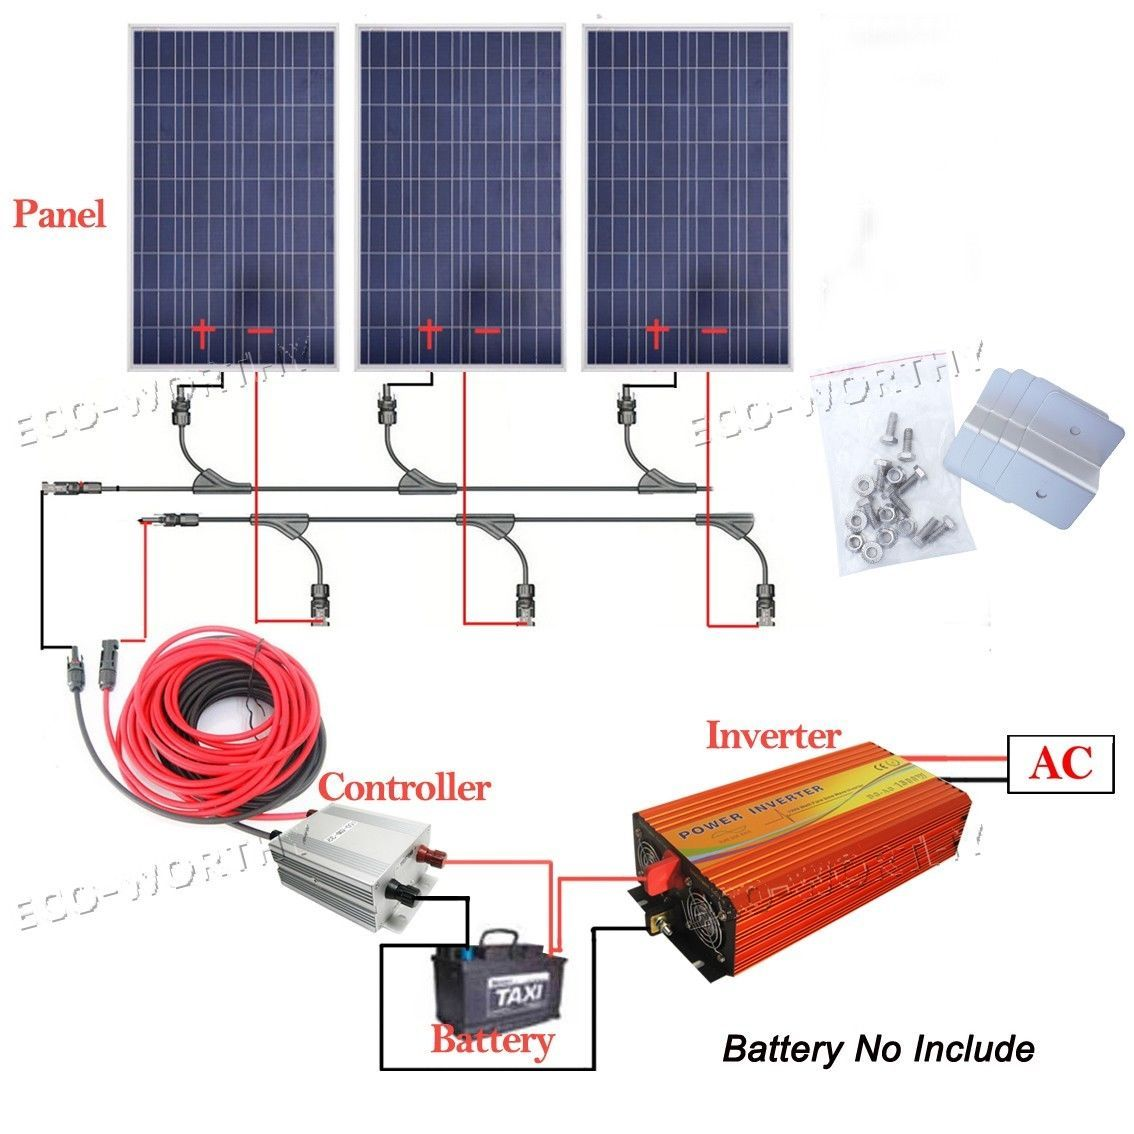 200w 300w 400w 800w Off Grid System 100w Solar Panel W 1kw 1500w 3000w Inverter In Home Garden Home Solar Energy Panels Best Solar Panels Solar Panel Kits